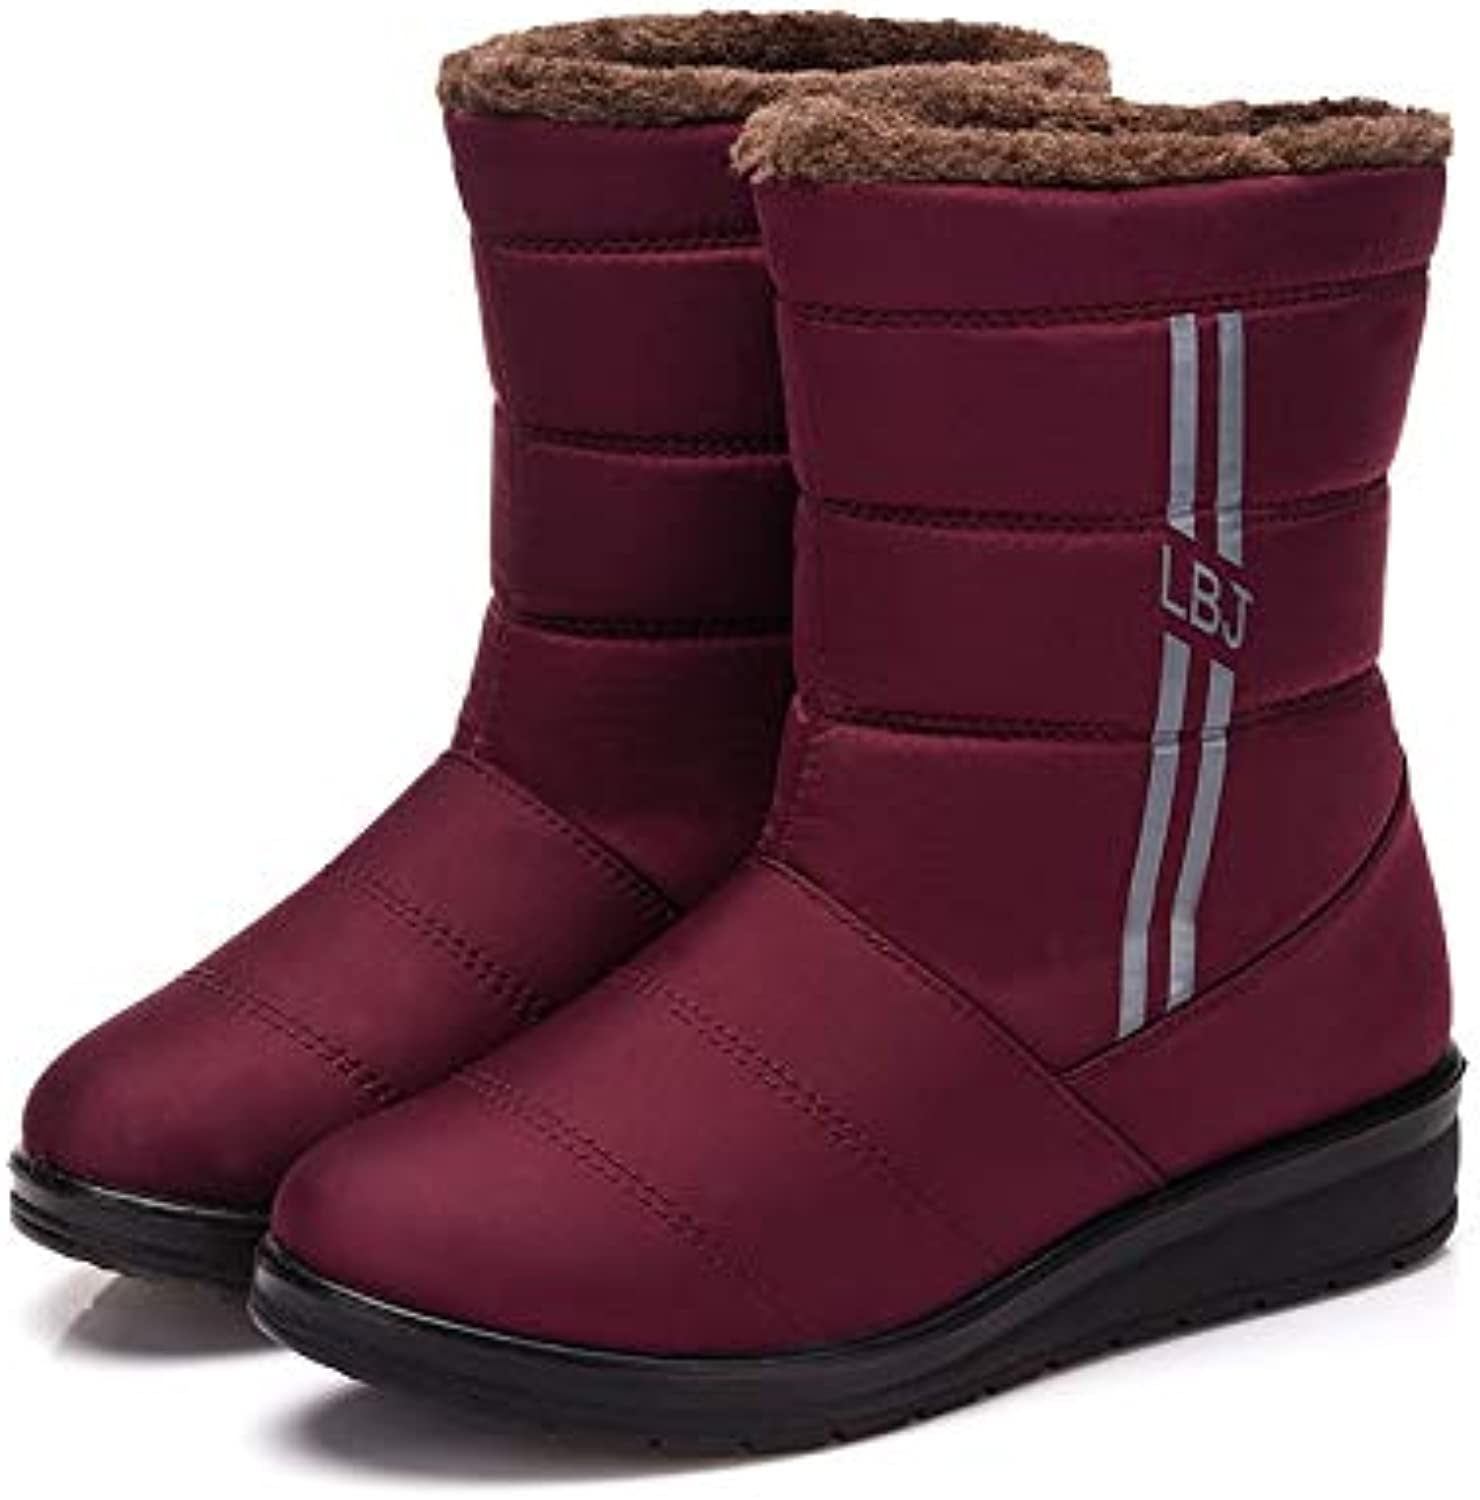 DDL- Snow Boots Women's Snow Boots Winter Female Casual Warm shoes Fur Waterproof Upper Fashion Non-Slip Sole Woman Snow Boots